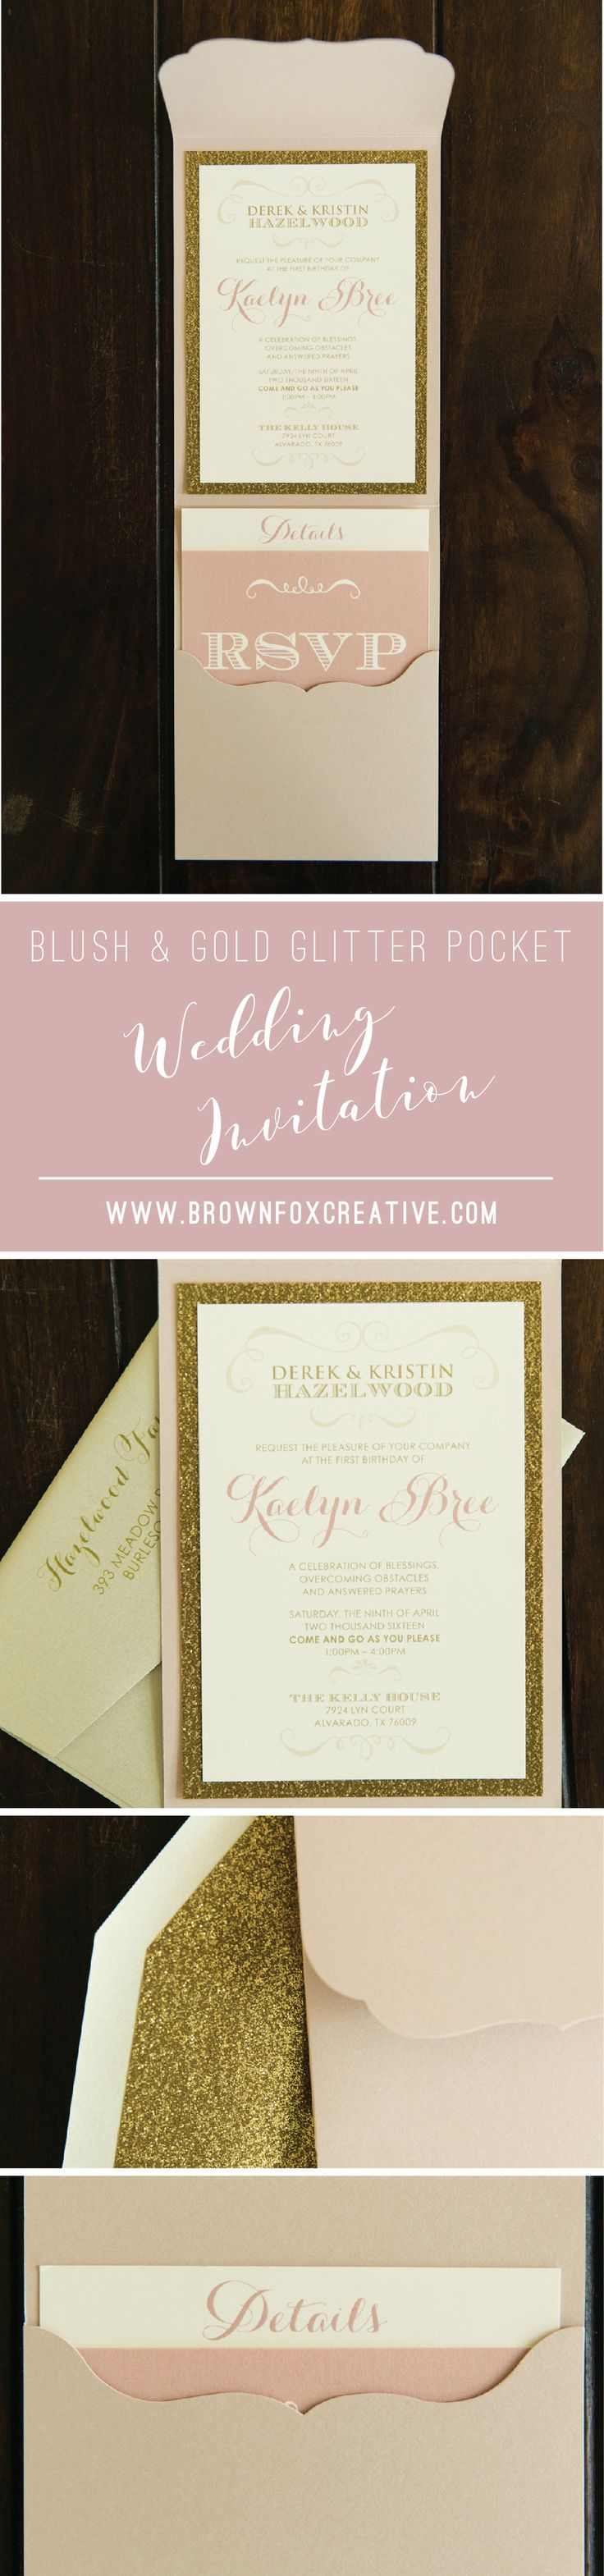 how to return address wedding envelopes%0A  x  Bush Pink  Gold Glitter  u     Scalloped Die Cut Pocket Wedding Invitation  with Inserts and